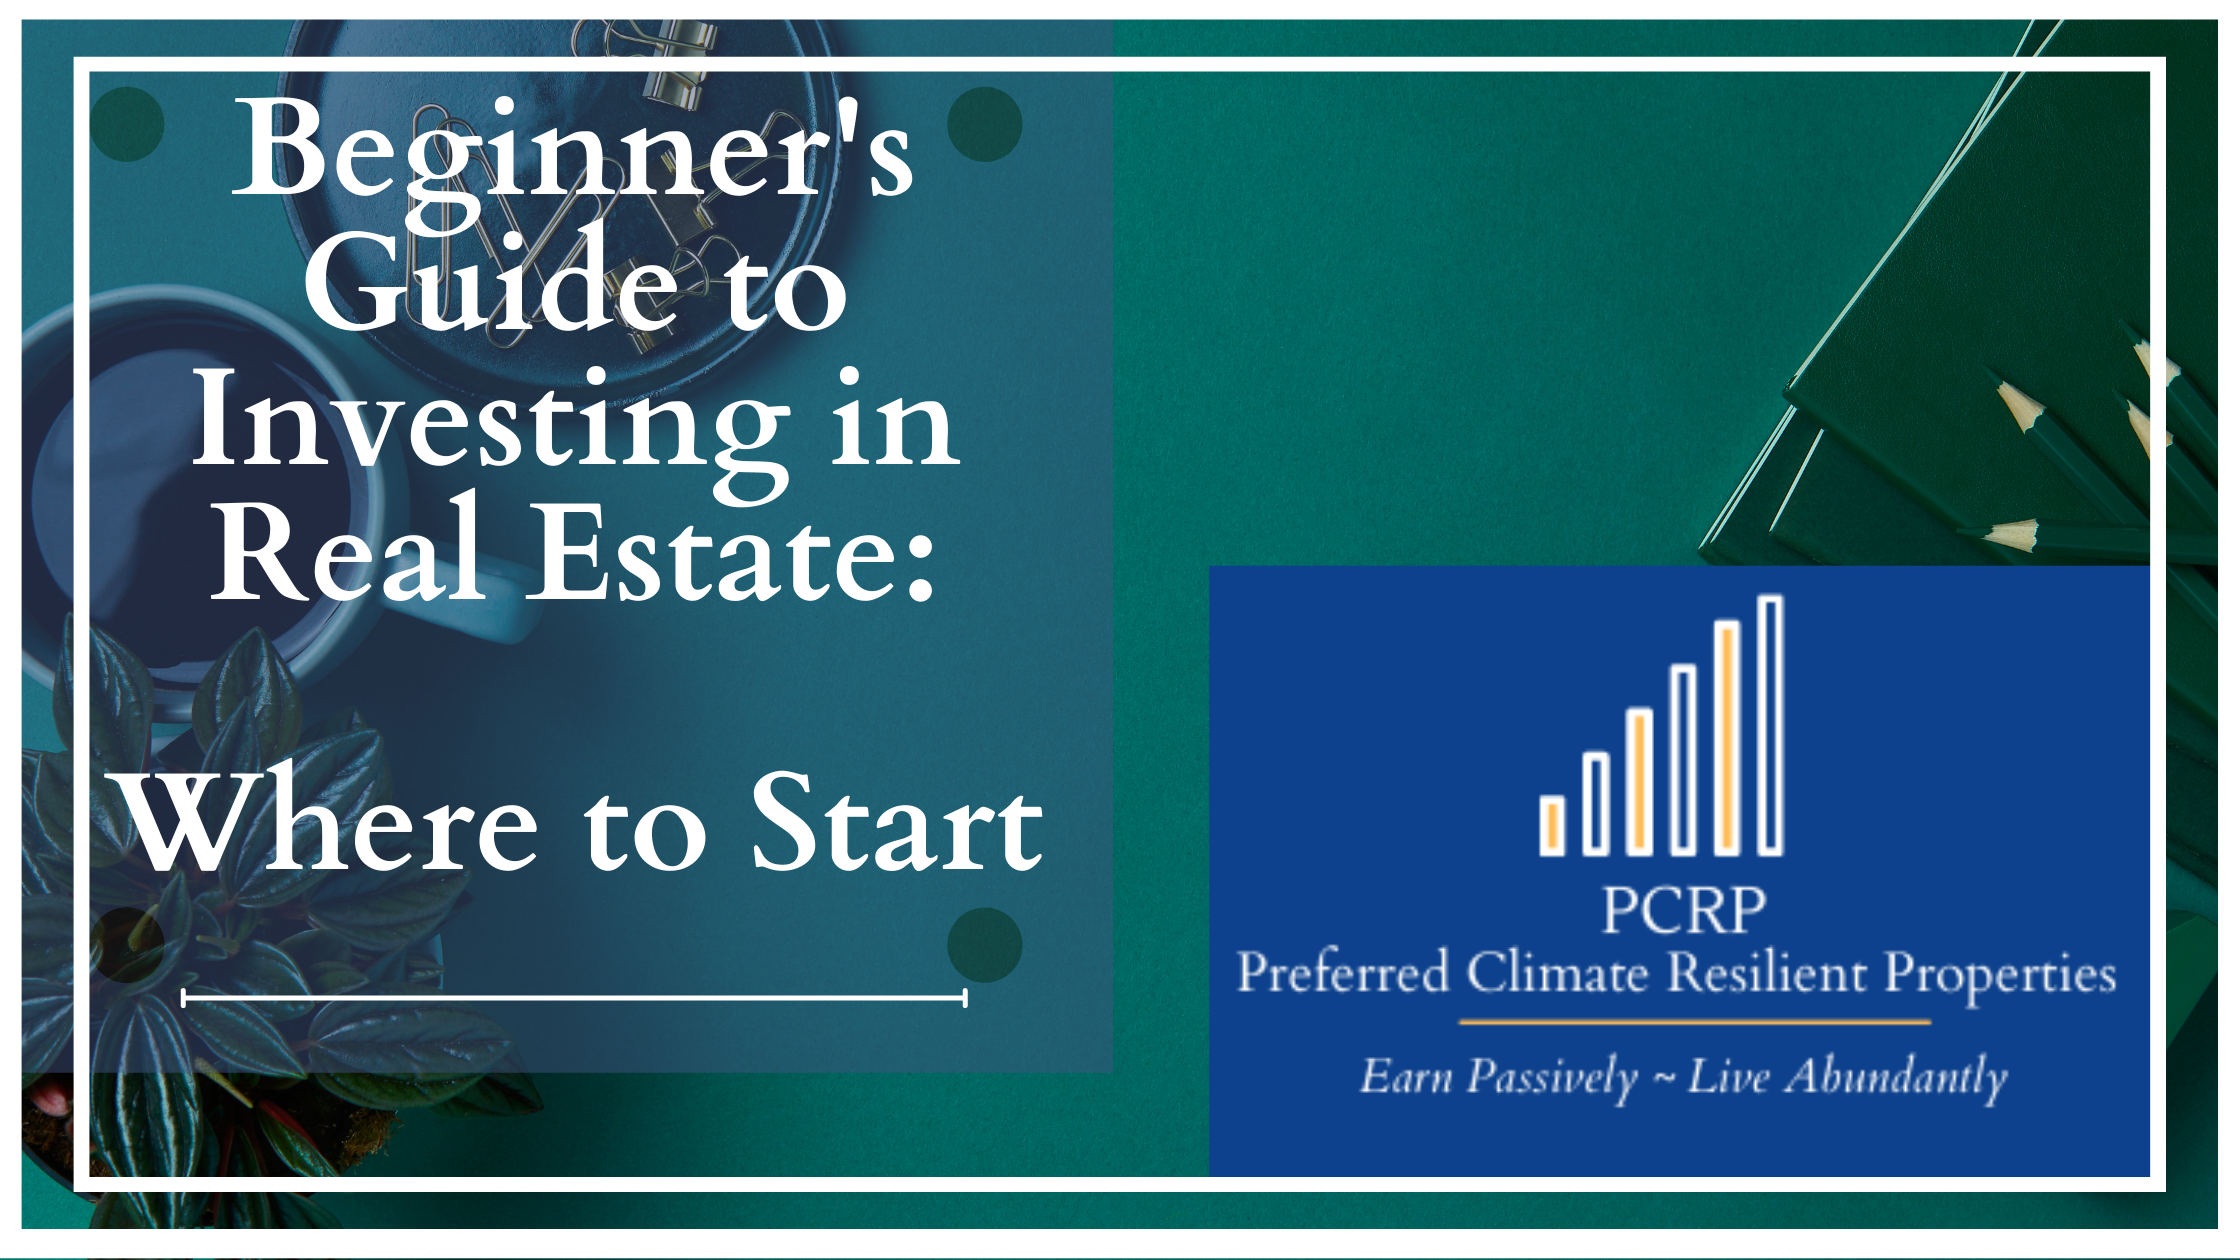 Beginner's Guide to Real Estate Investing & Where to Start